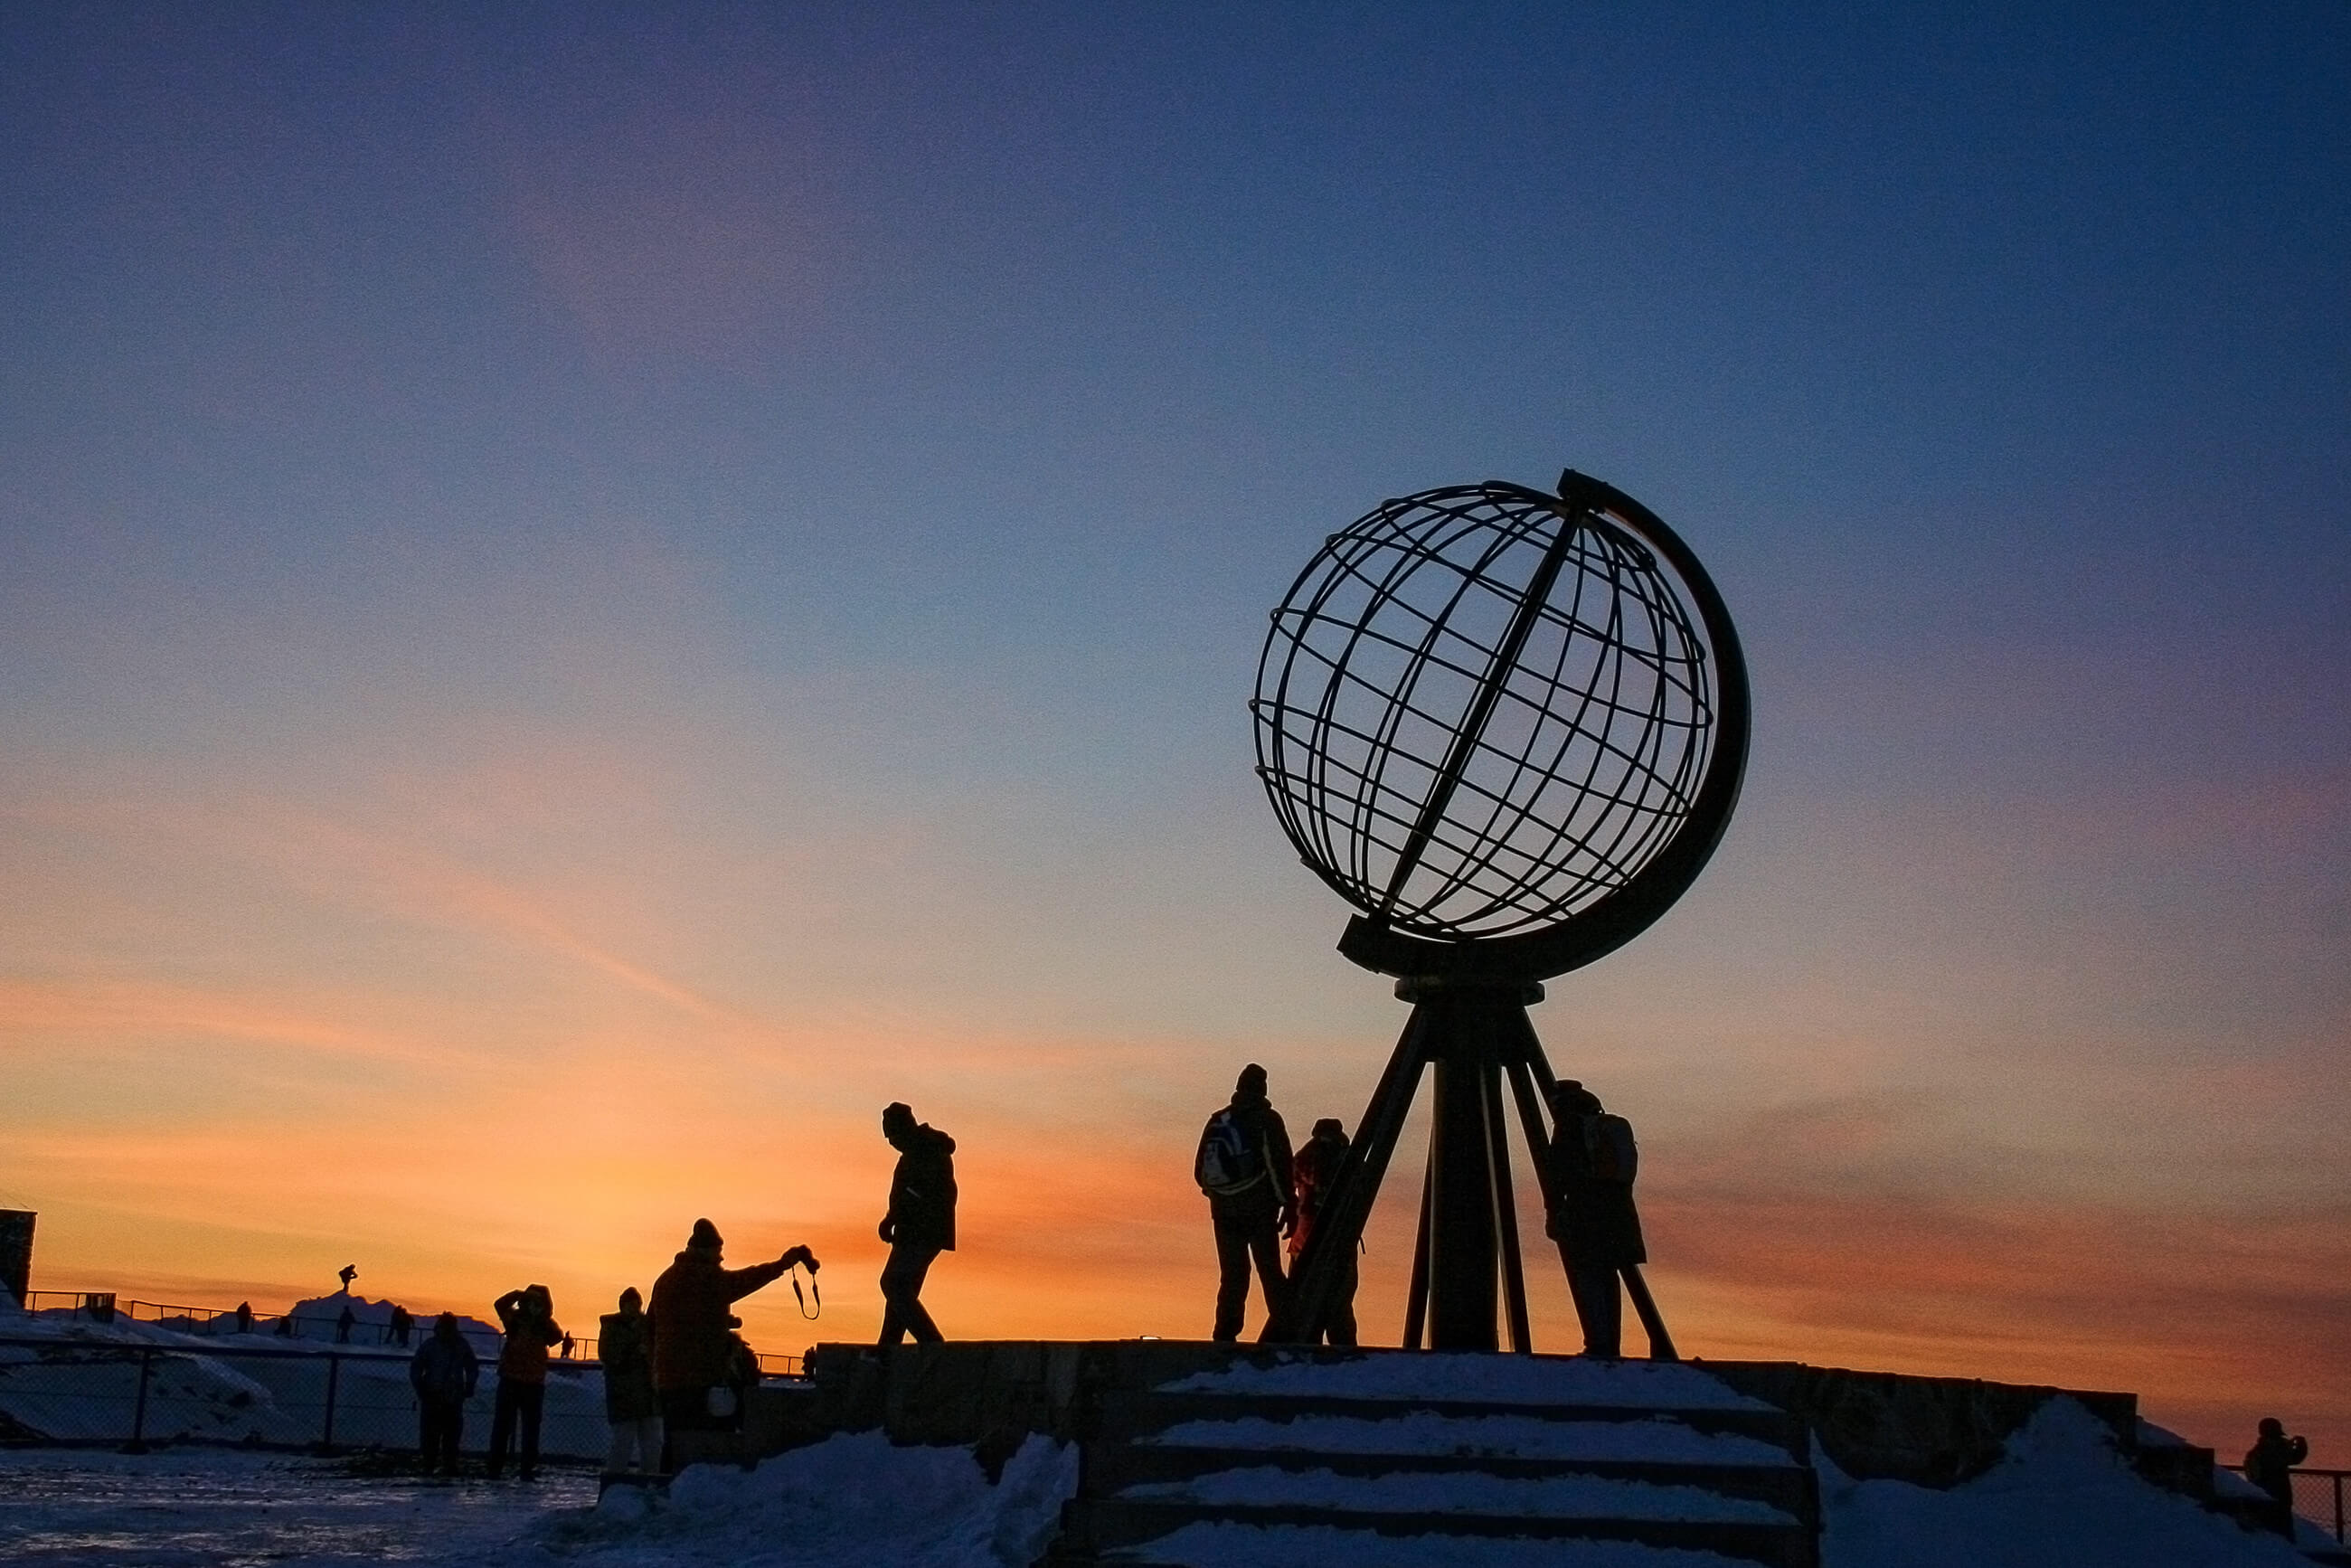 https://bubo.sk/uploads/galleries/7317/north-cape-globe-mageroya-norway-hgr-47683--photo_photo_competition.jpg